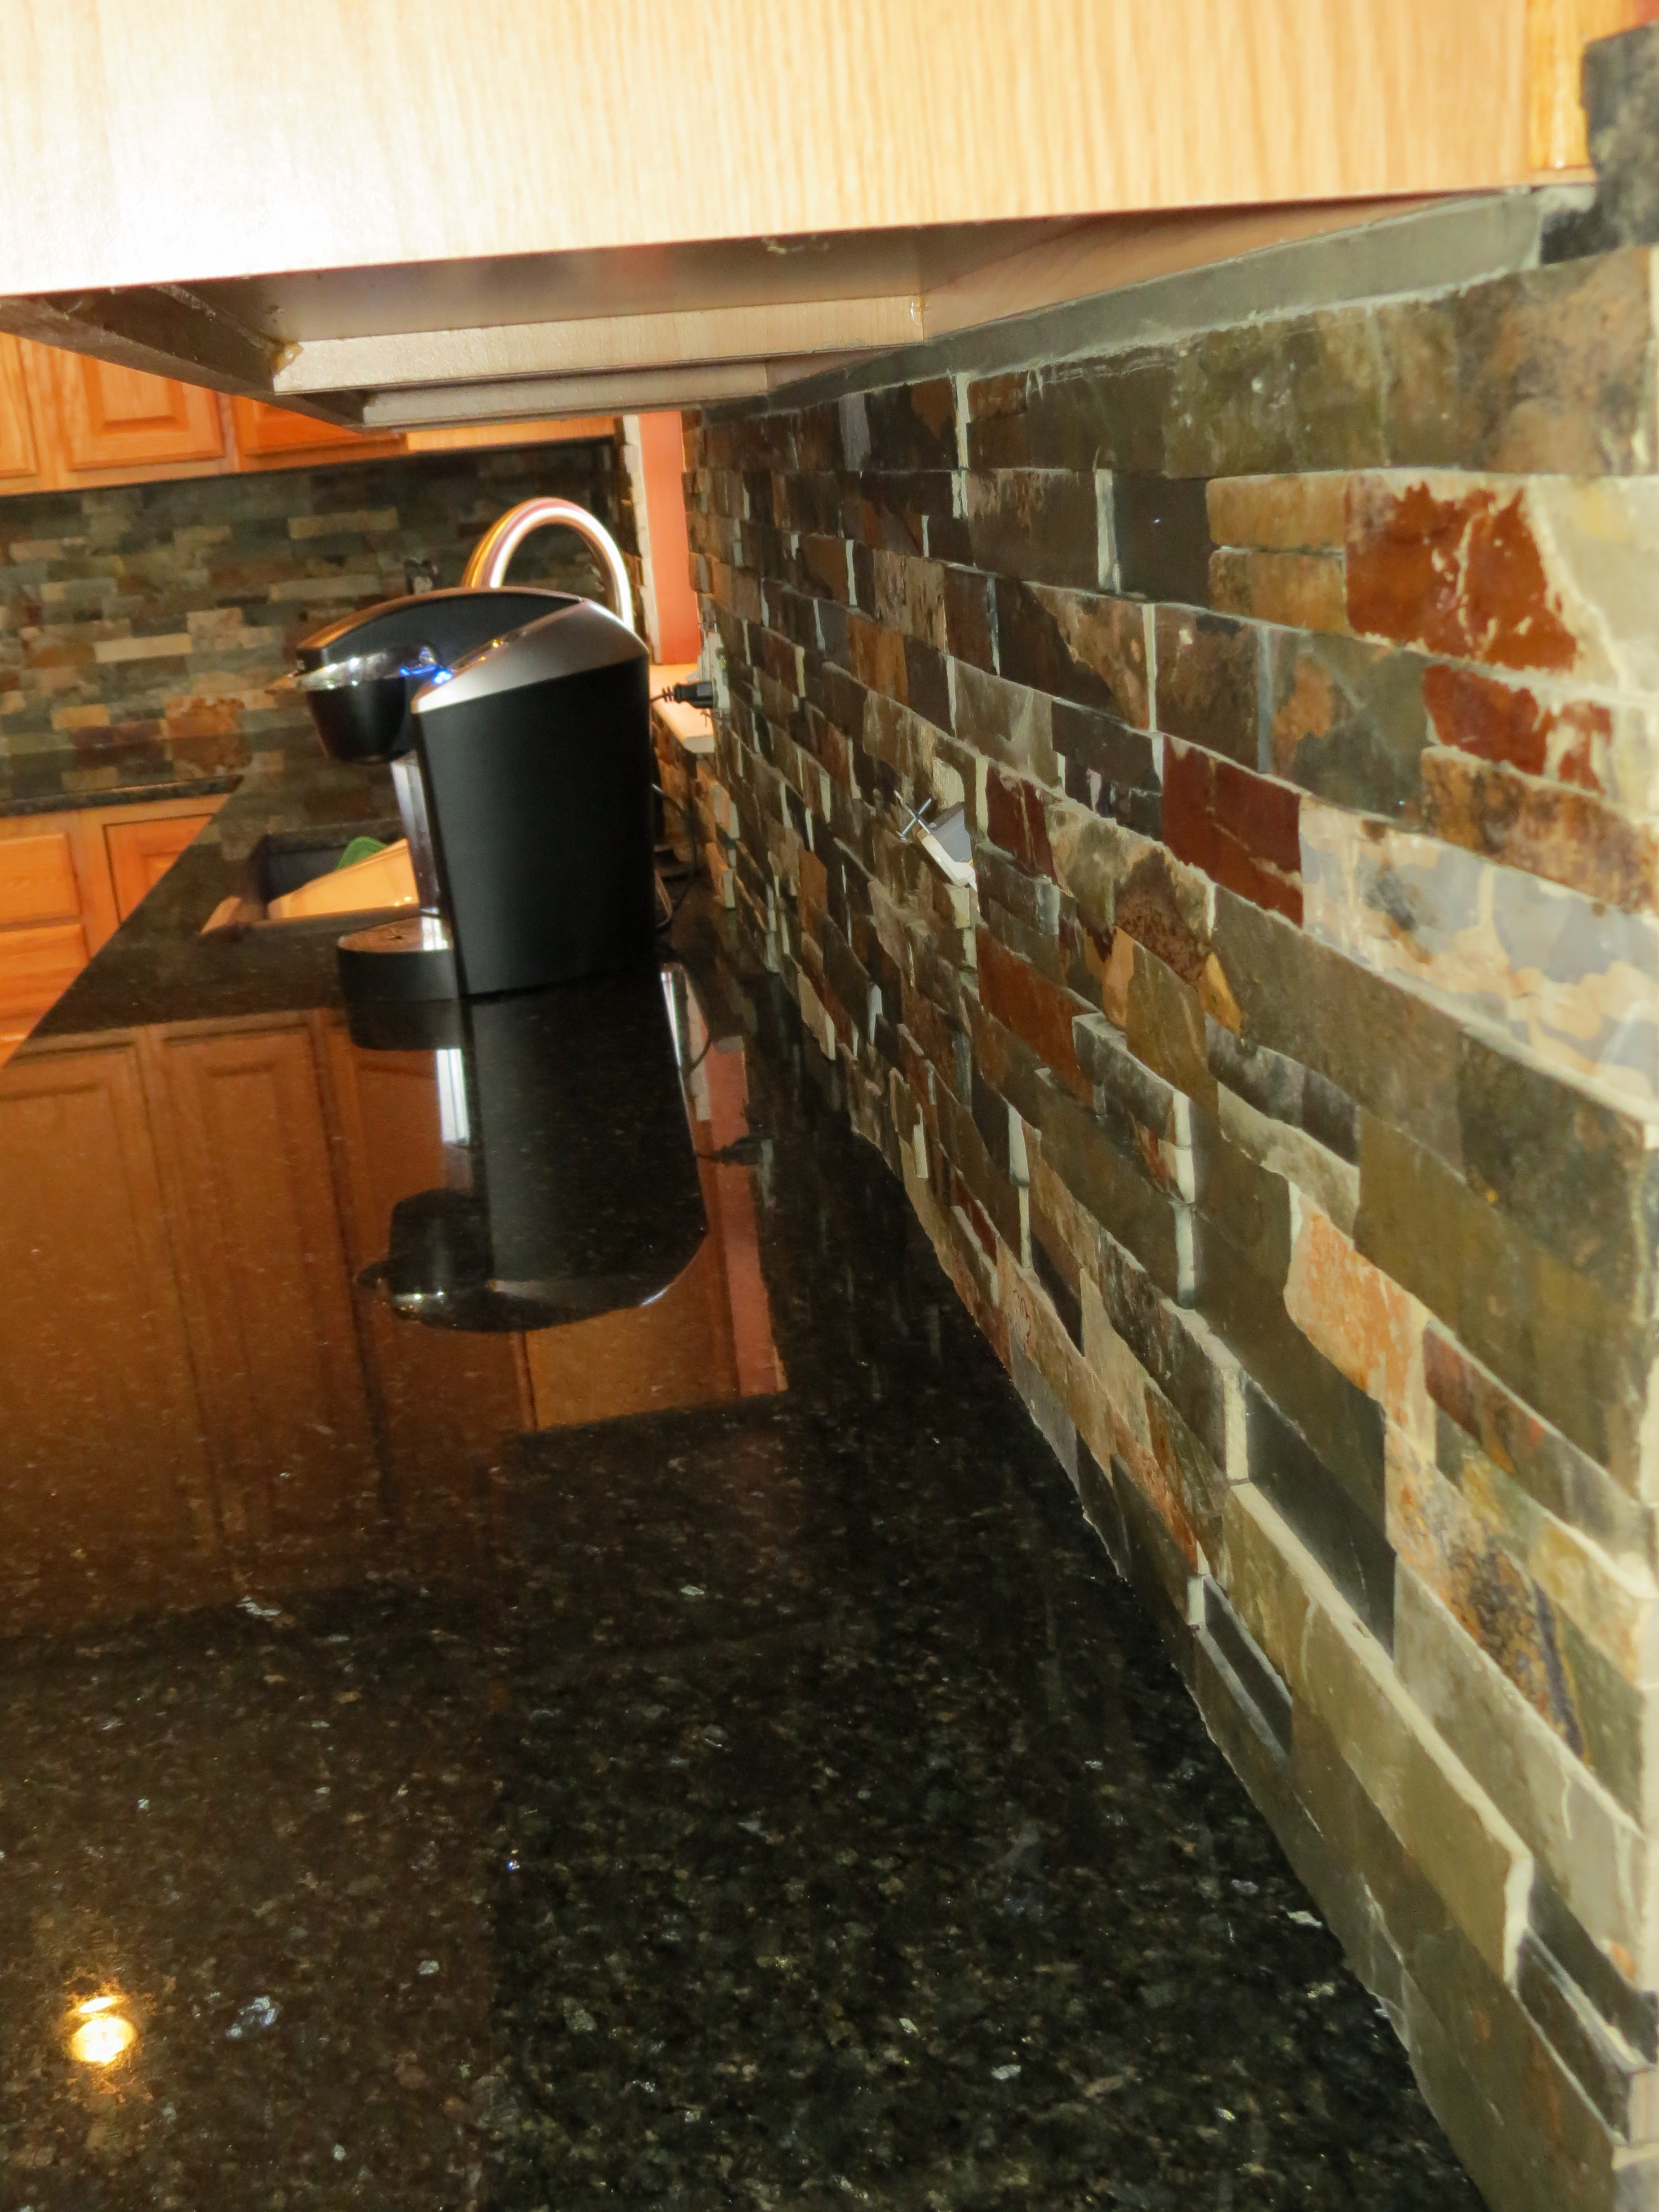 tile backsplash installation dayton ohio kitchen remodeling finished slate tile backsplash installation dayton ohio